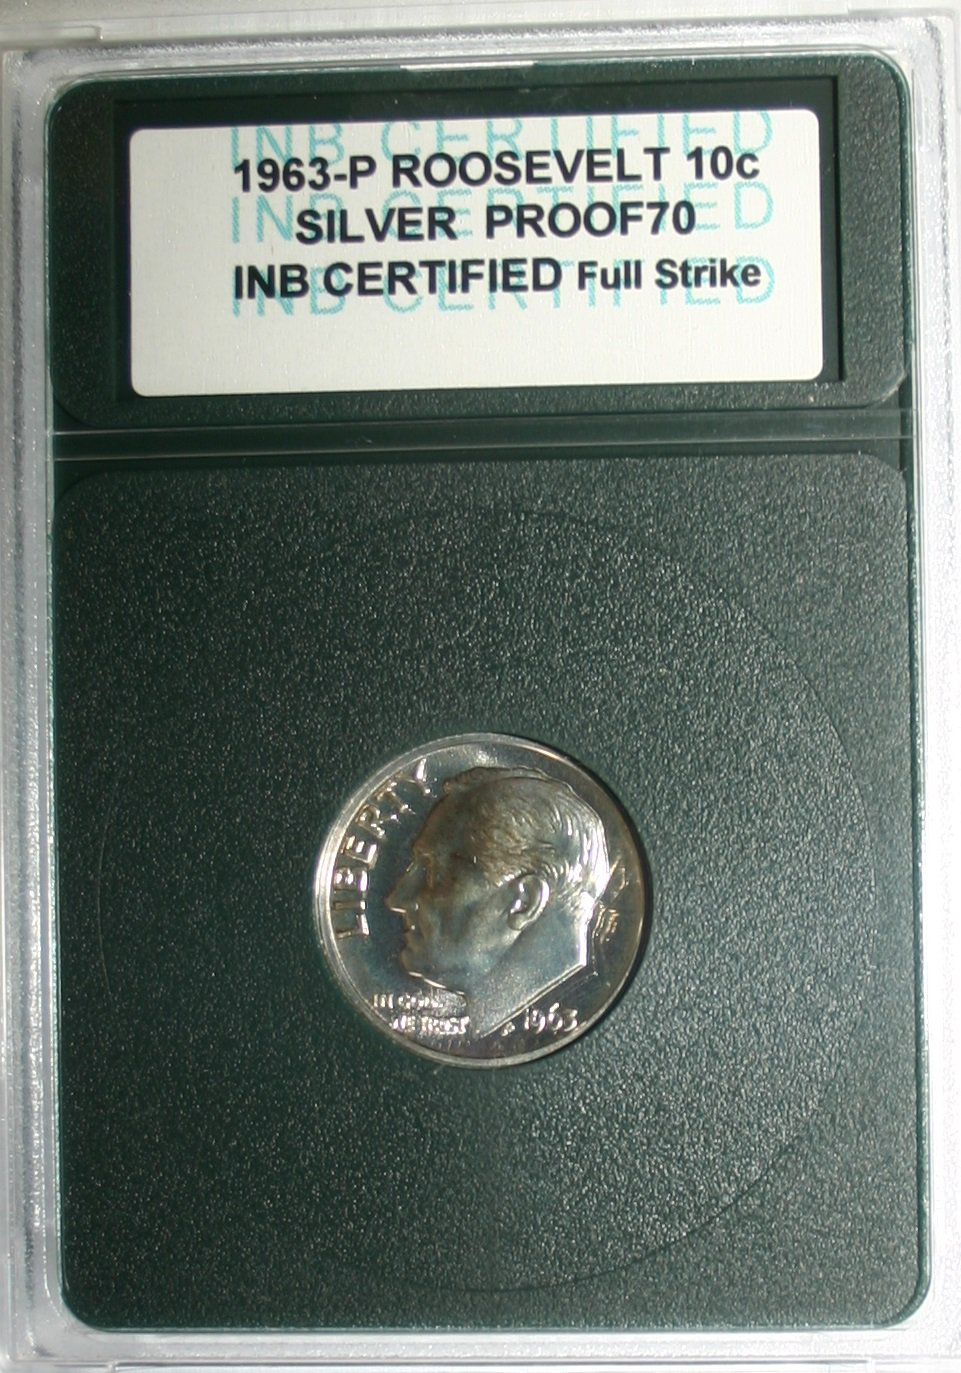 USA 1963-P Roosevelt 10 Cent Dime Silver Proof Full Strike INB Certified Coin